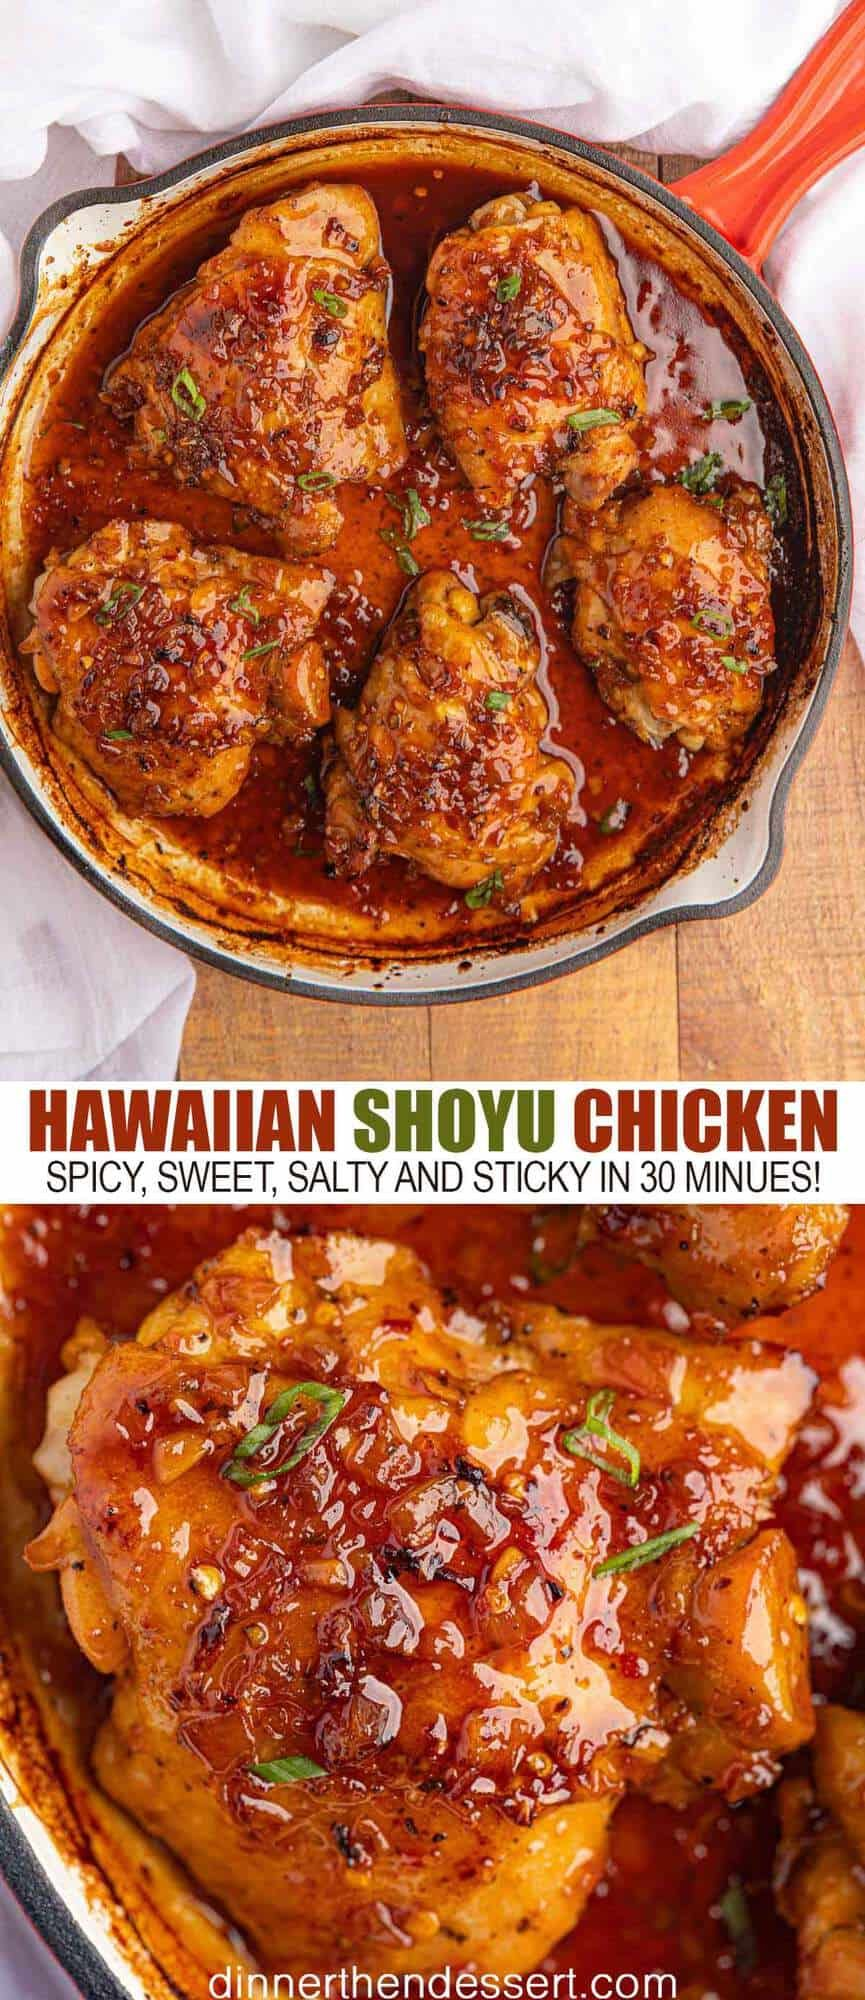 Hawaiian Shoyu Chicken (Sticky Sweet in 30 mins!) - Dinner, then Dessert